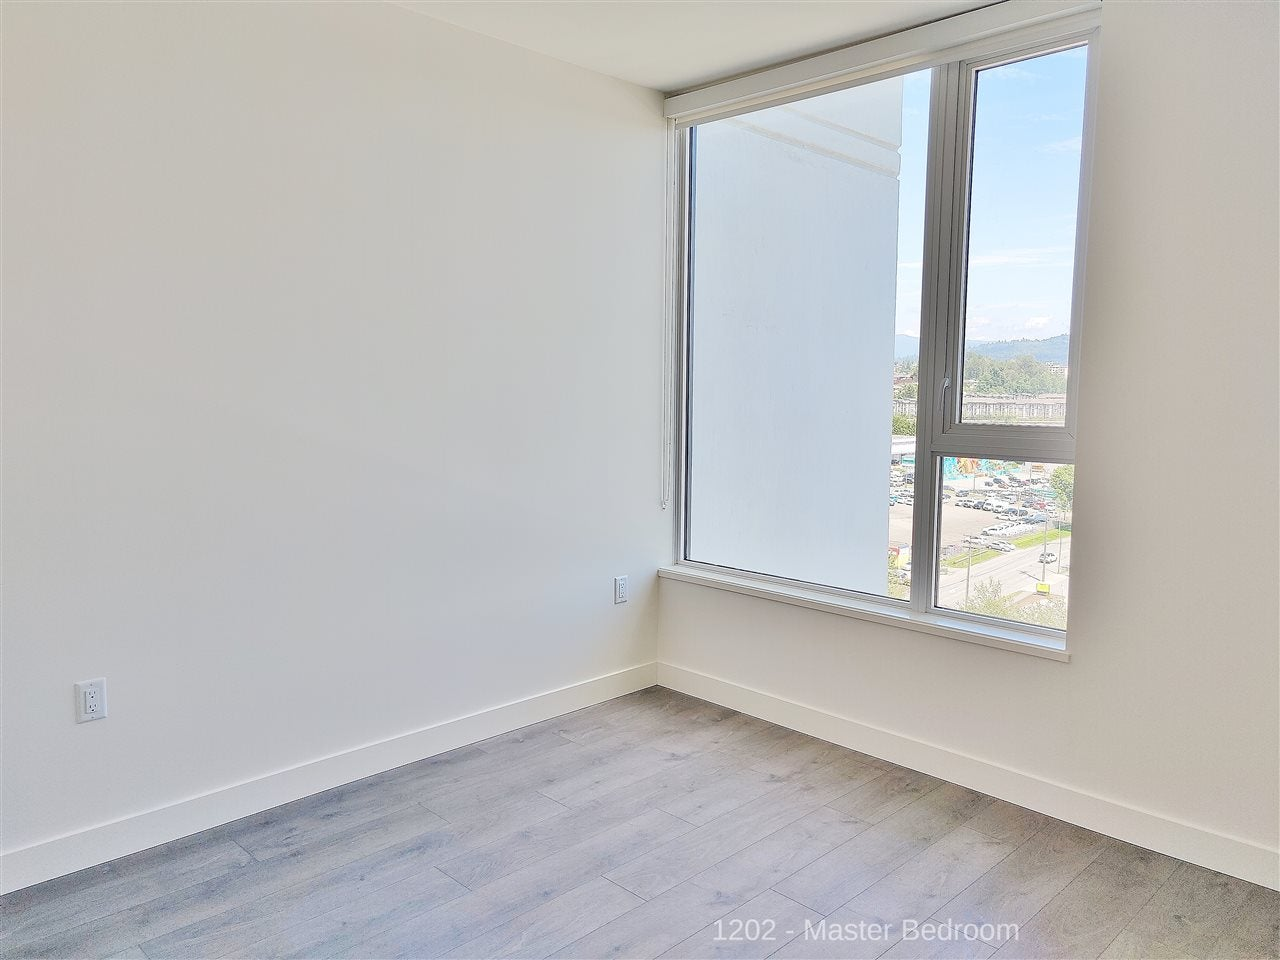 1202 4465 JUNEAU STREET - Brentwood Park Apartment/Condo for sale, 1 Bedroom (R2470011) - #24